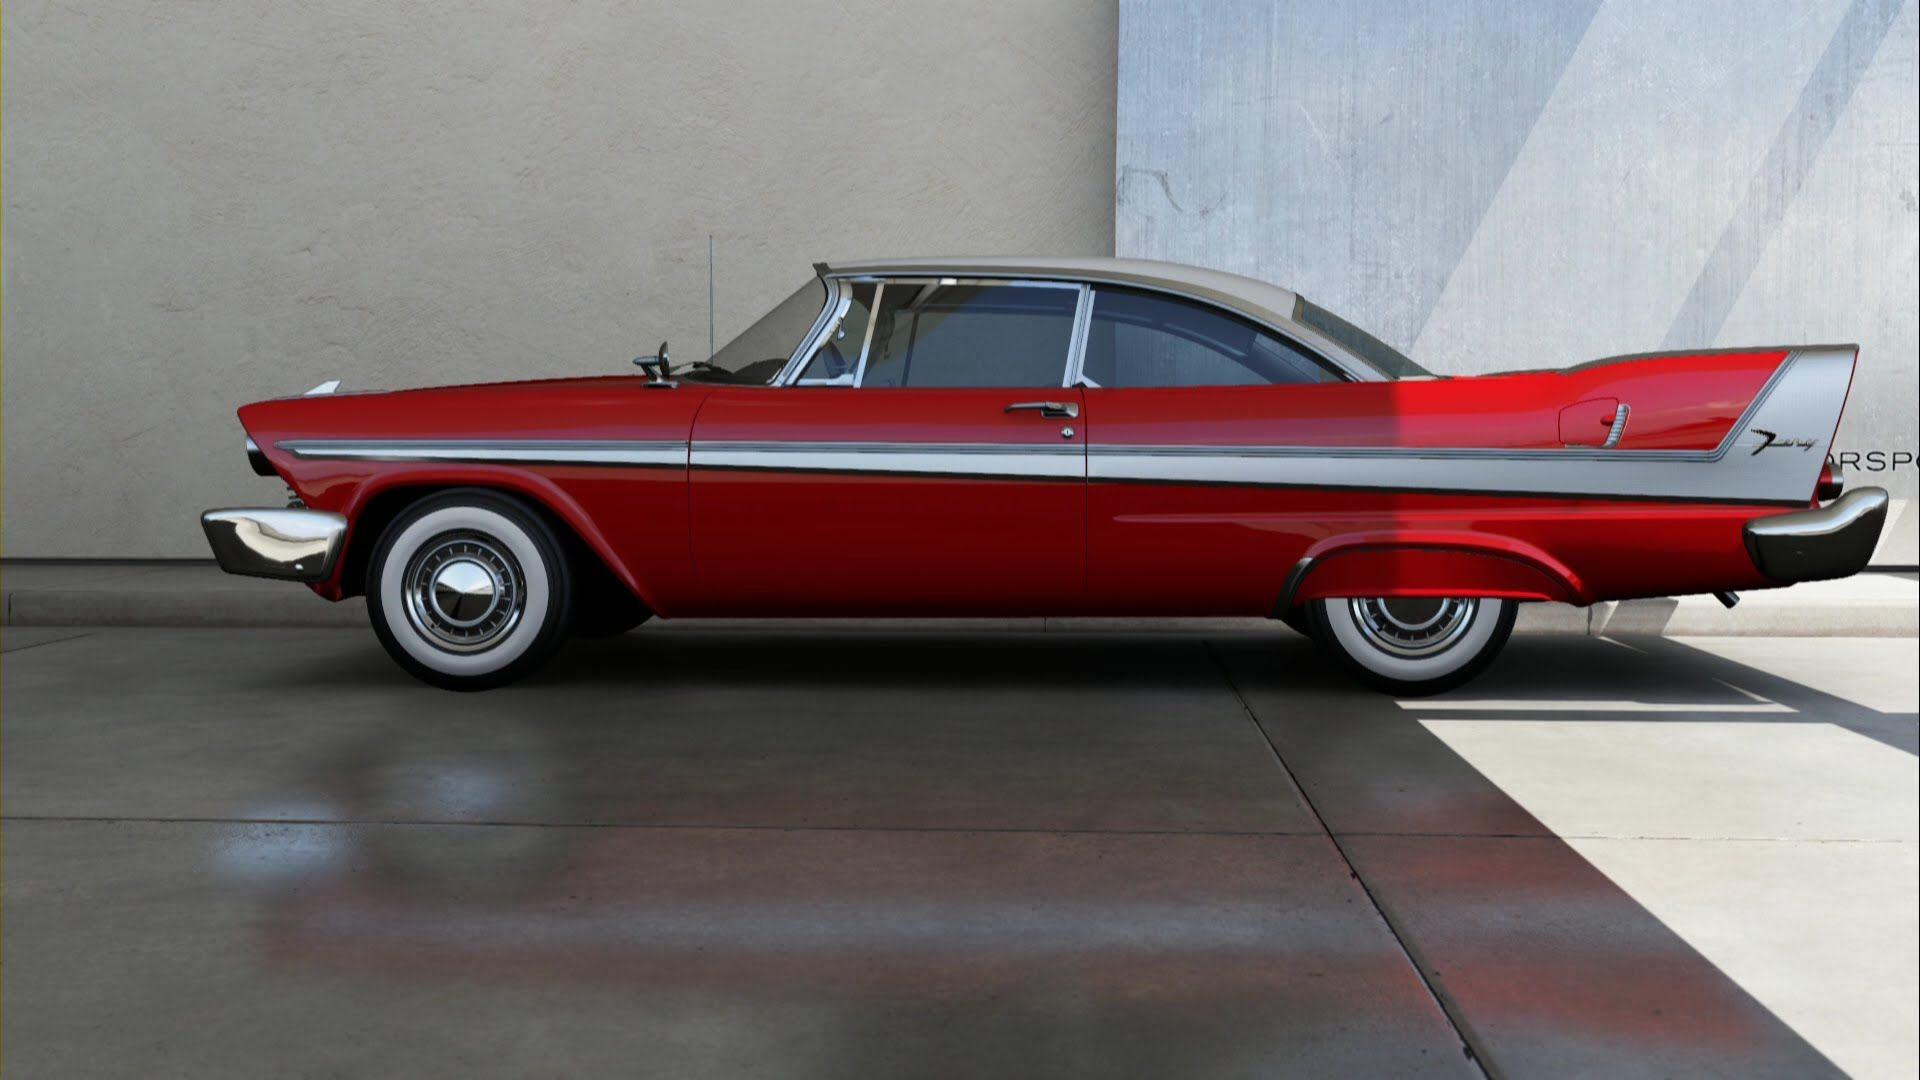 1958 Plymouth Fury wallpapers, Vehicles, HQ 1958 Plymouth Fury ...